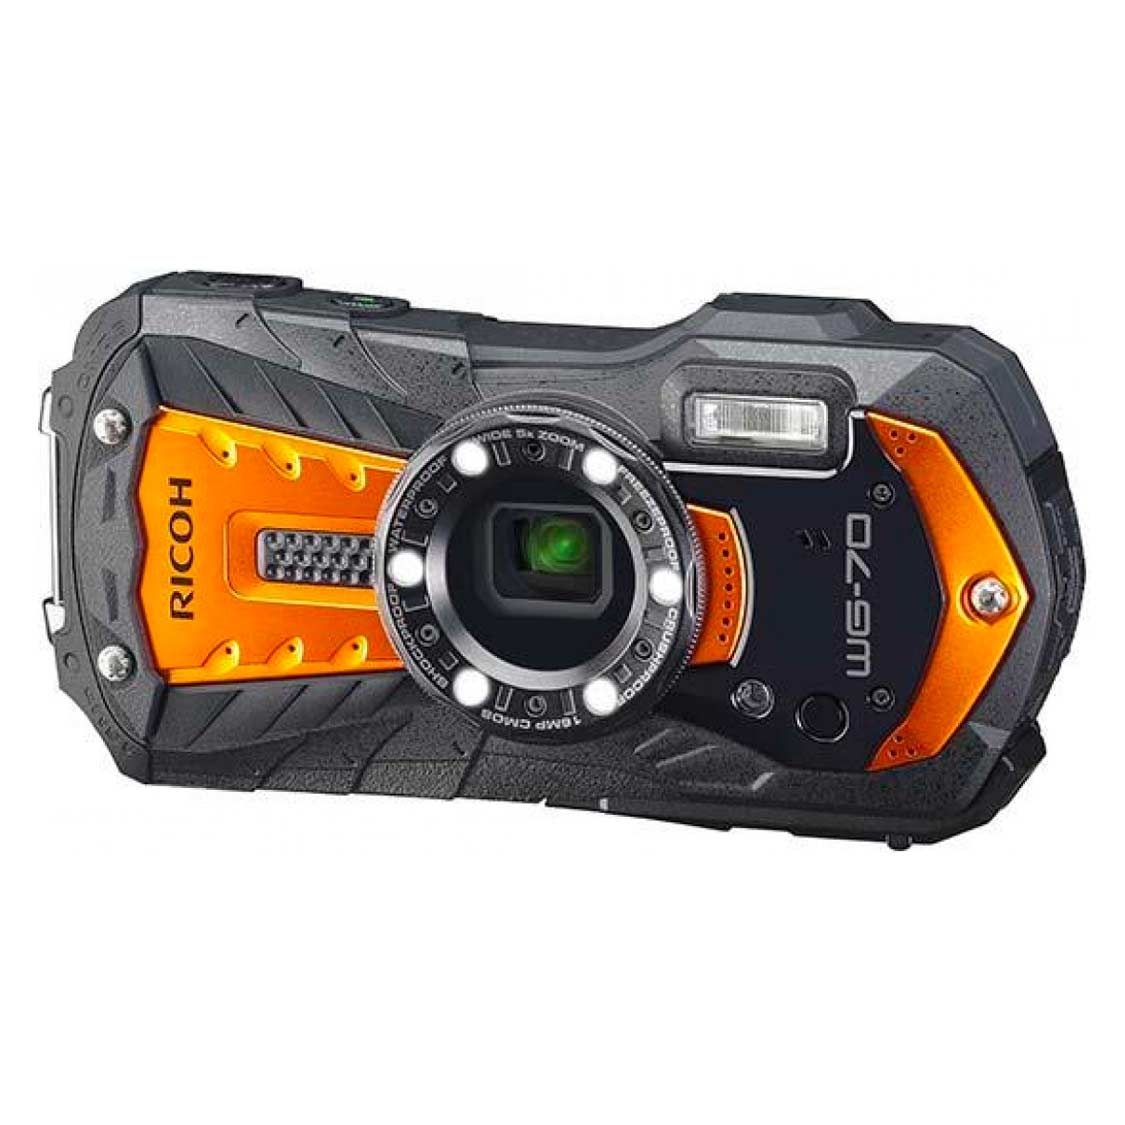 Ricoh WG-70 Waterproof Camera (orange)